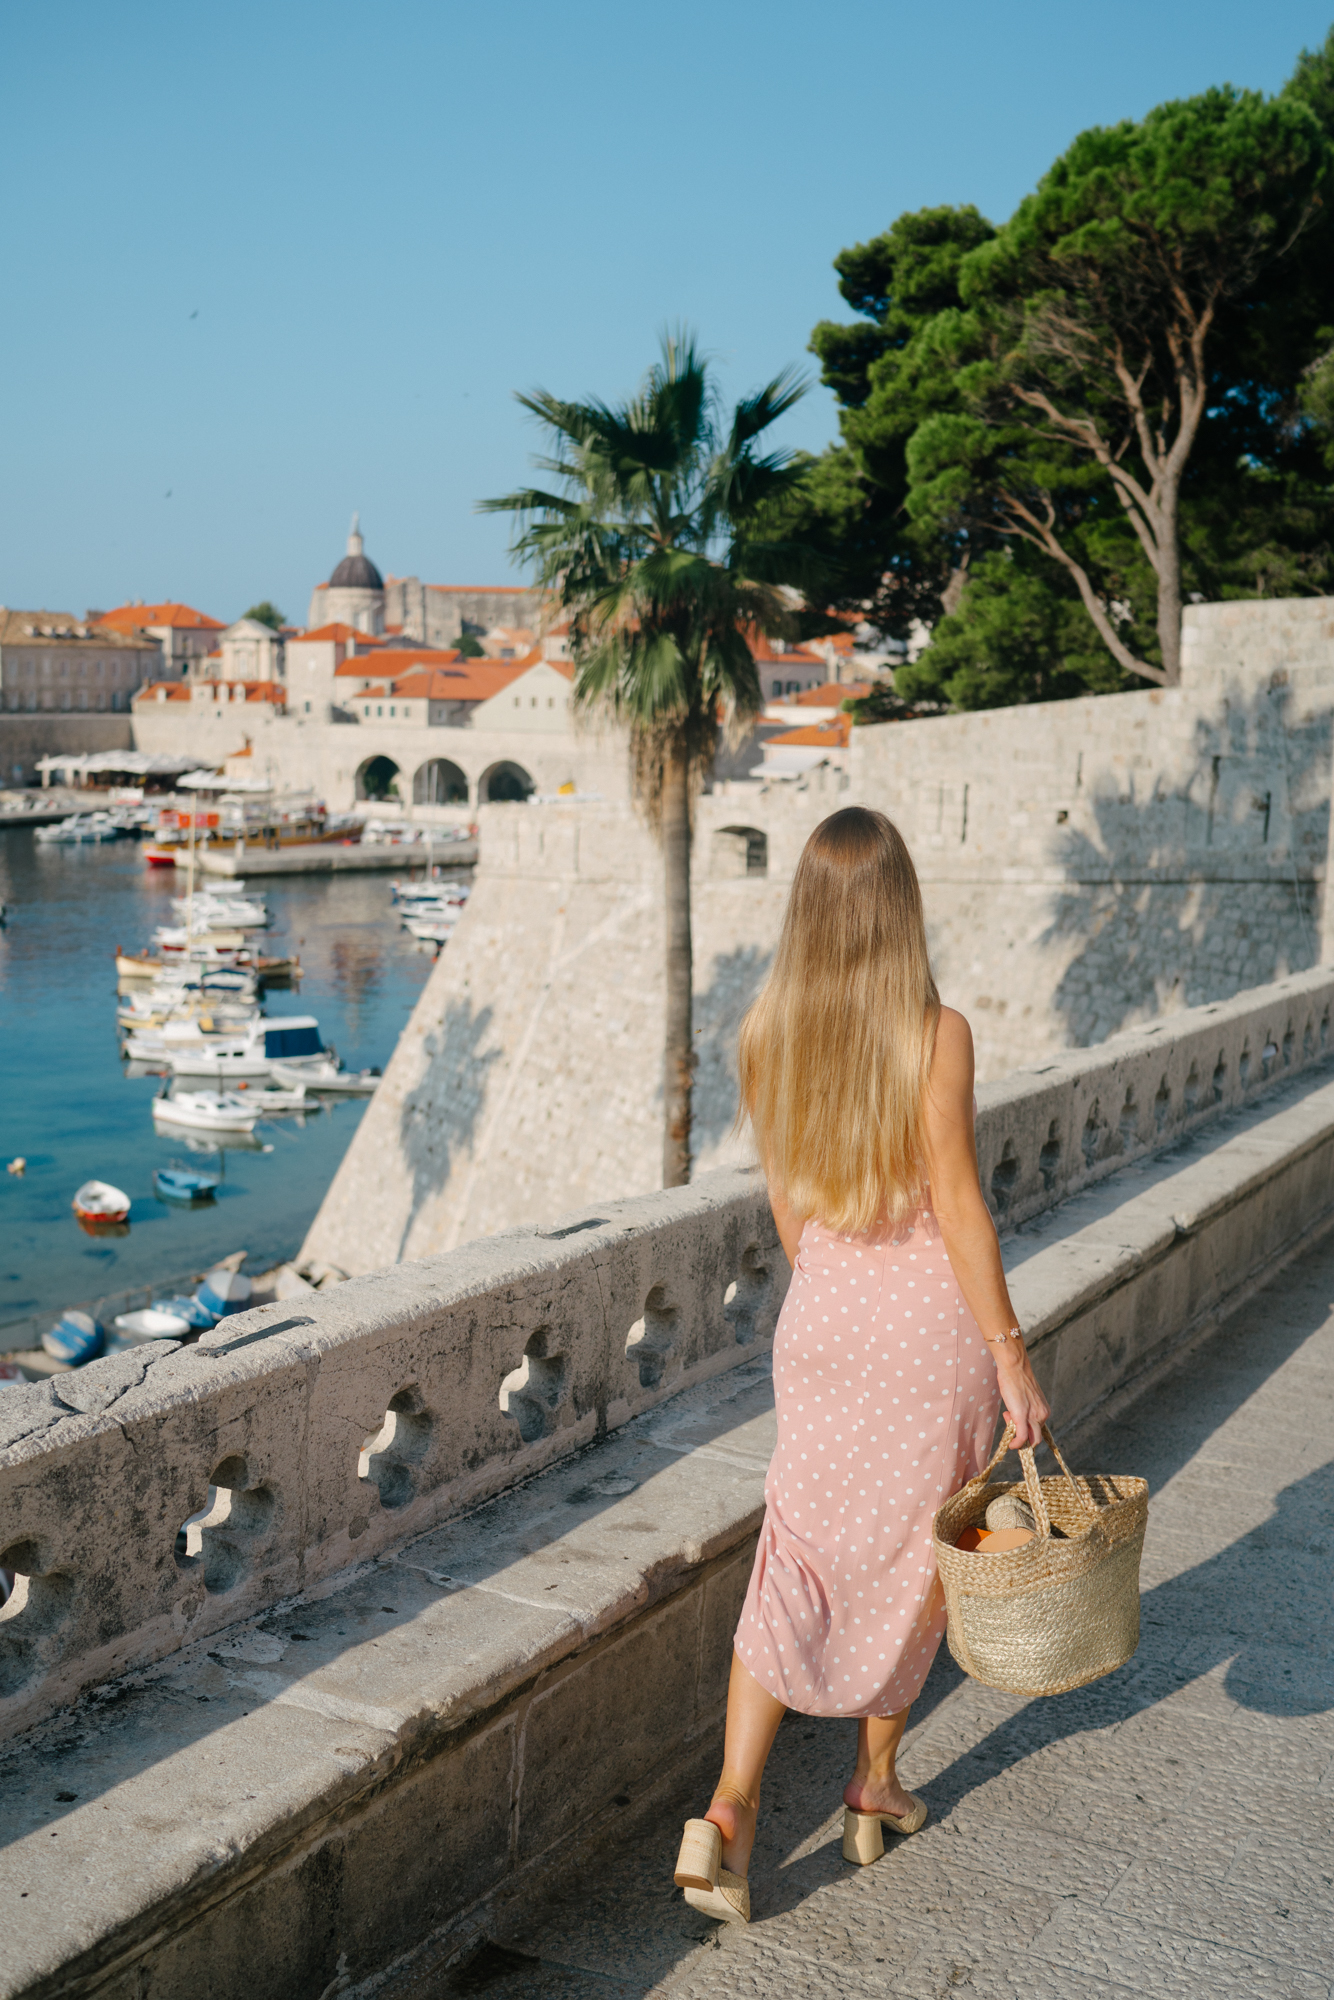 Things to do in Croatia